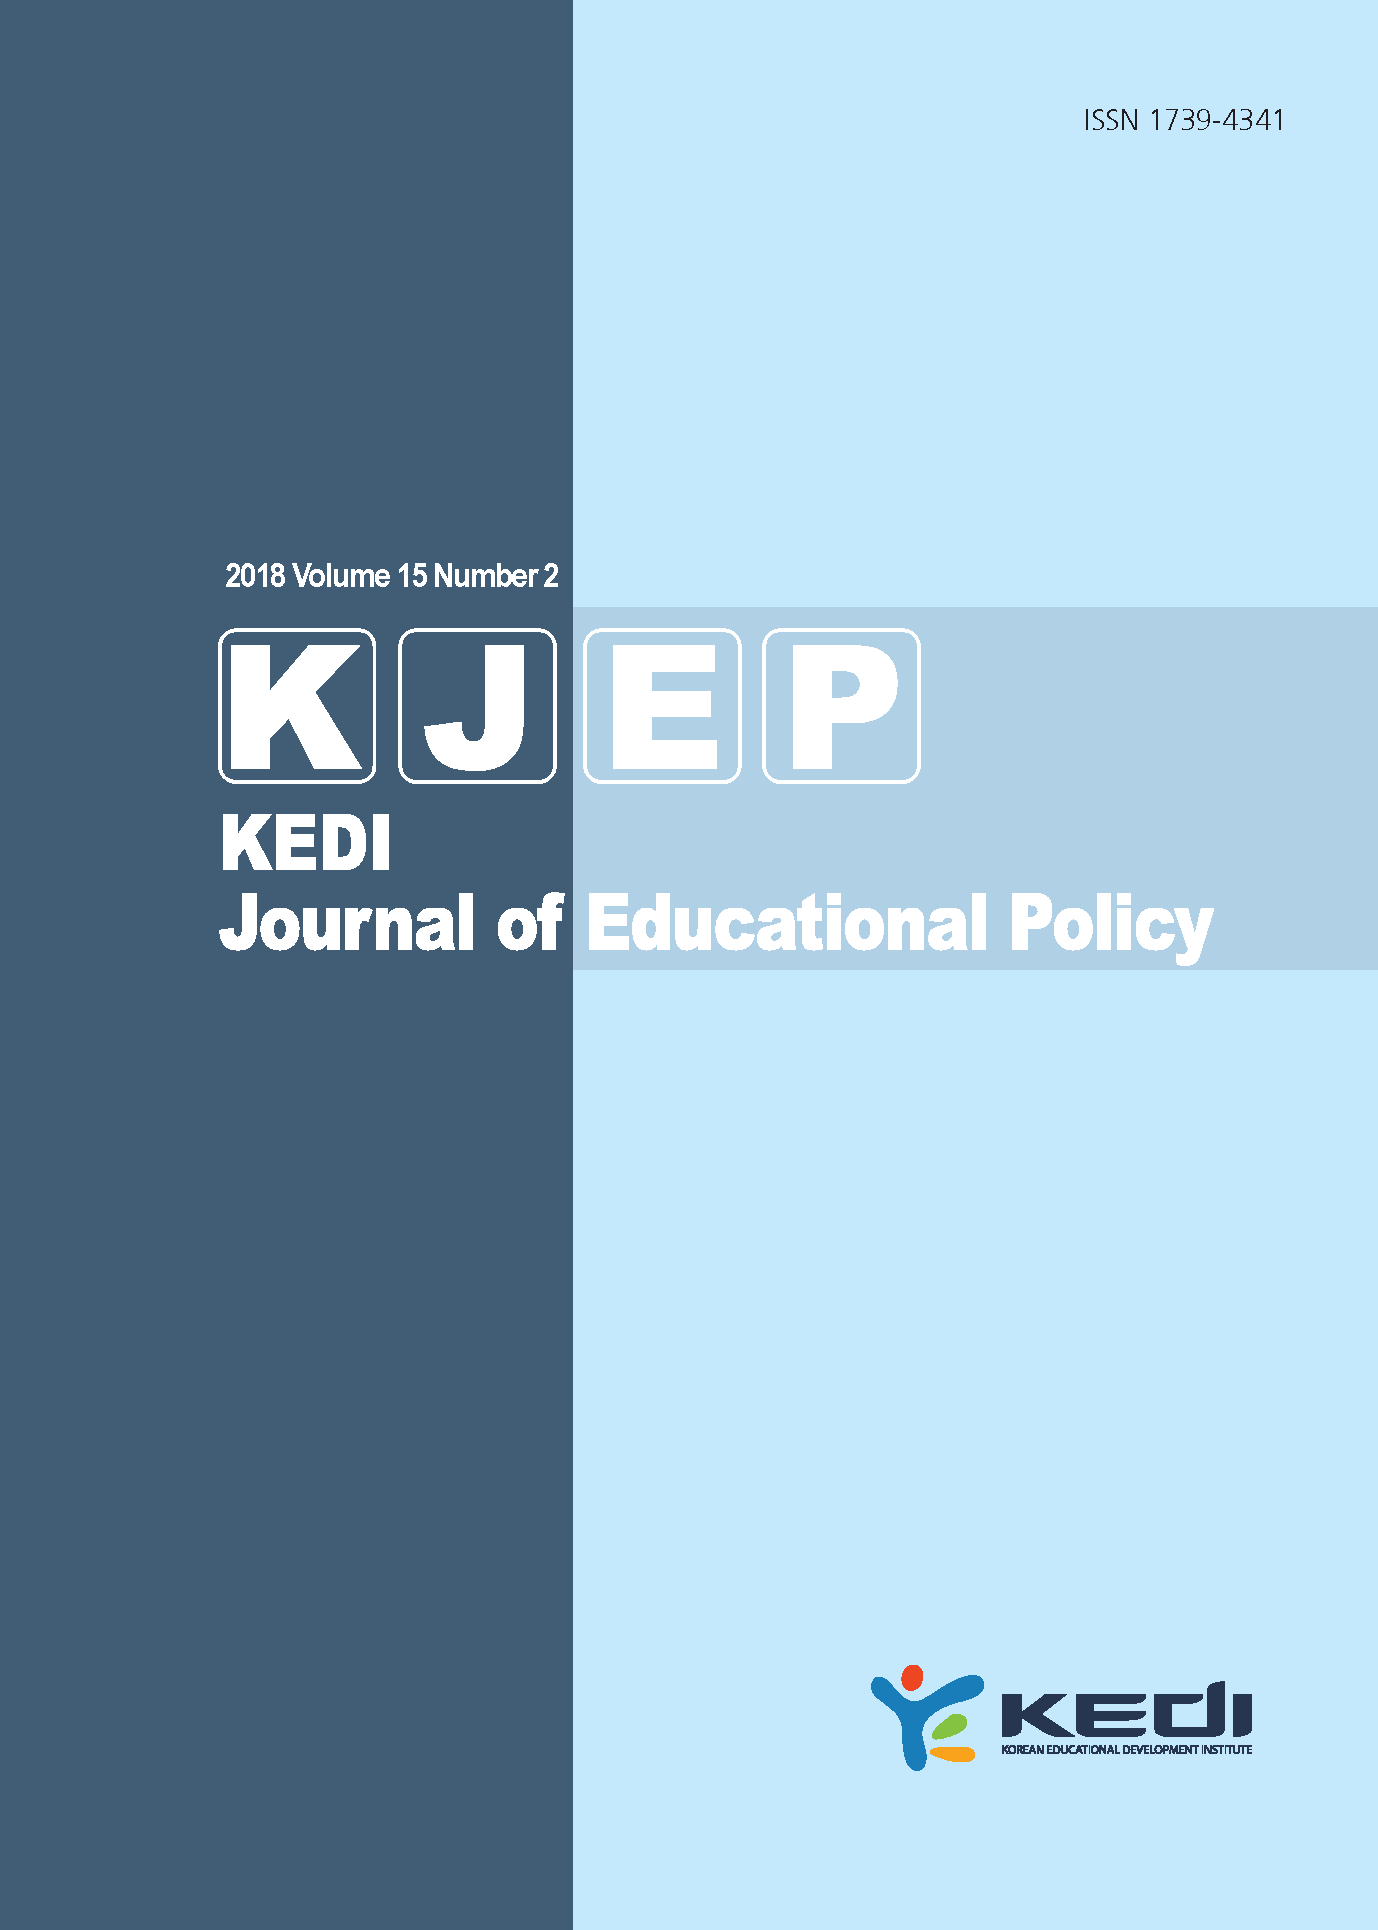 KEDI Journal of Educational Policy Vol.15 No.2 2018